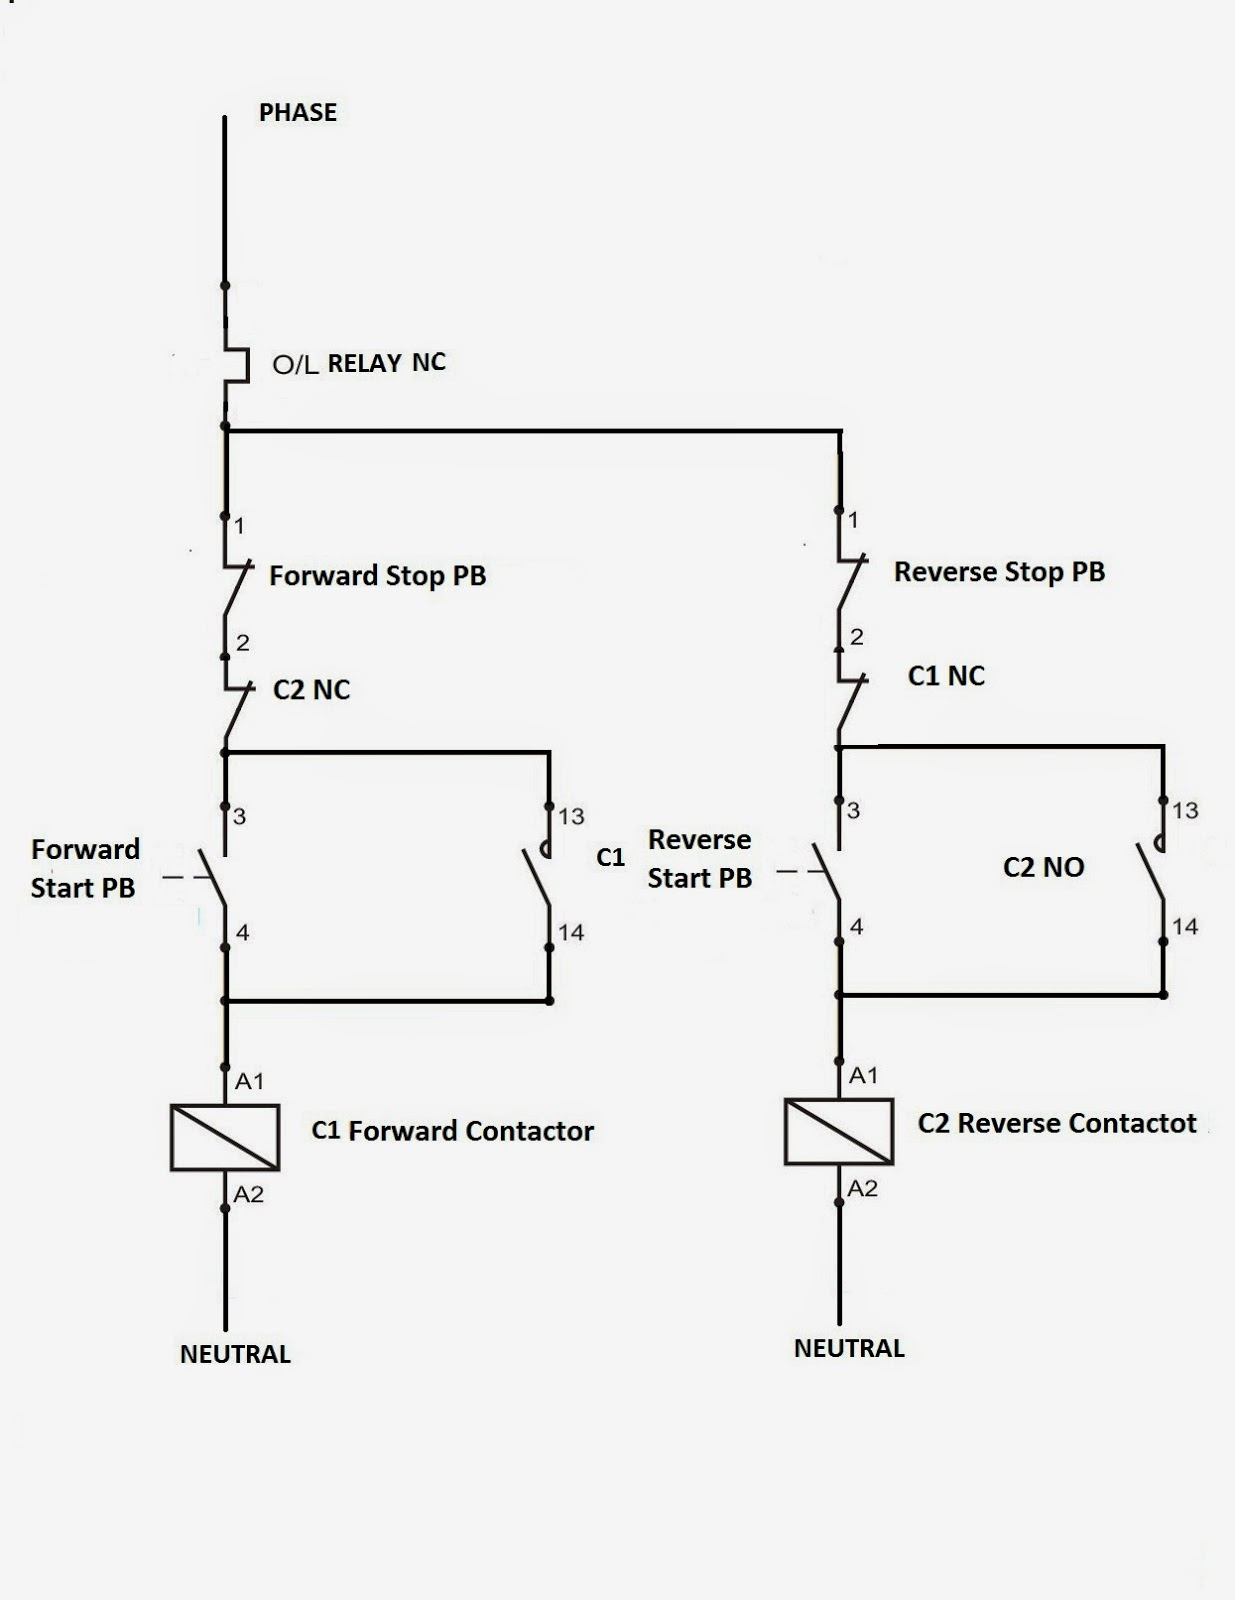 Dol Control Wiring Diagram Schema Online Delta 3 Phase Electrical Standards Direct Applications Reverse Forward Motor Starter